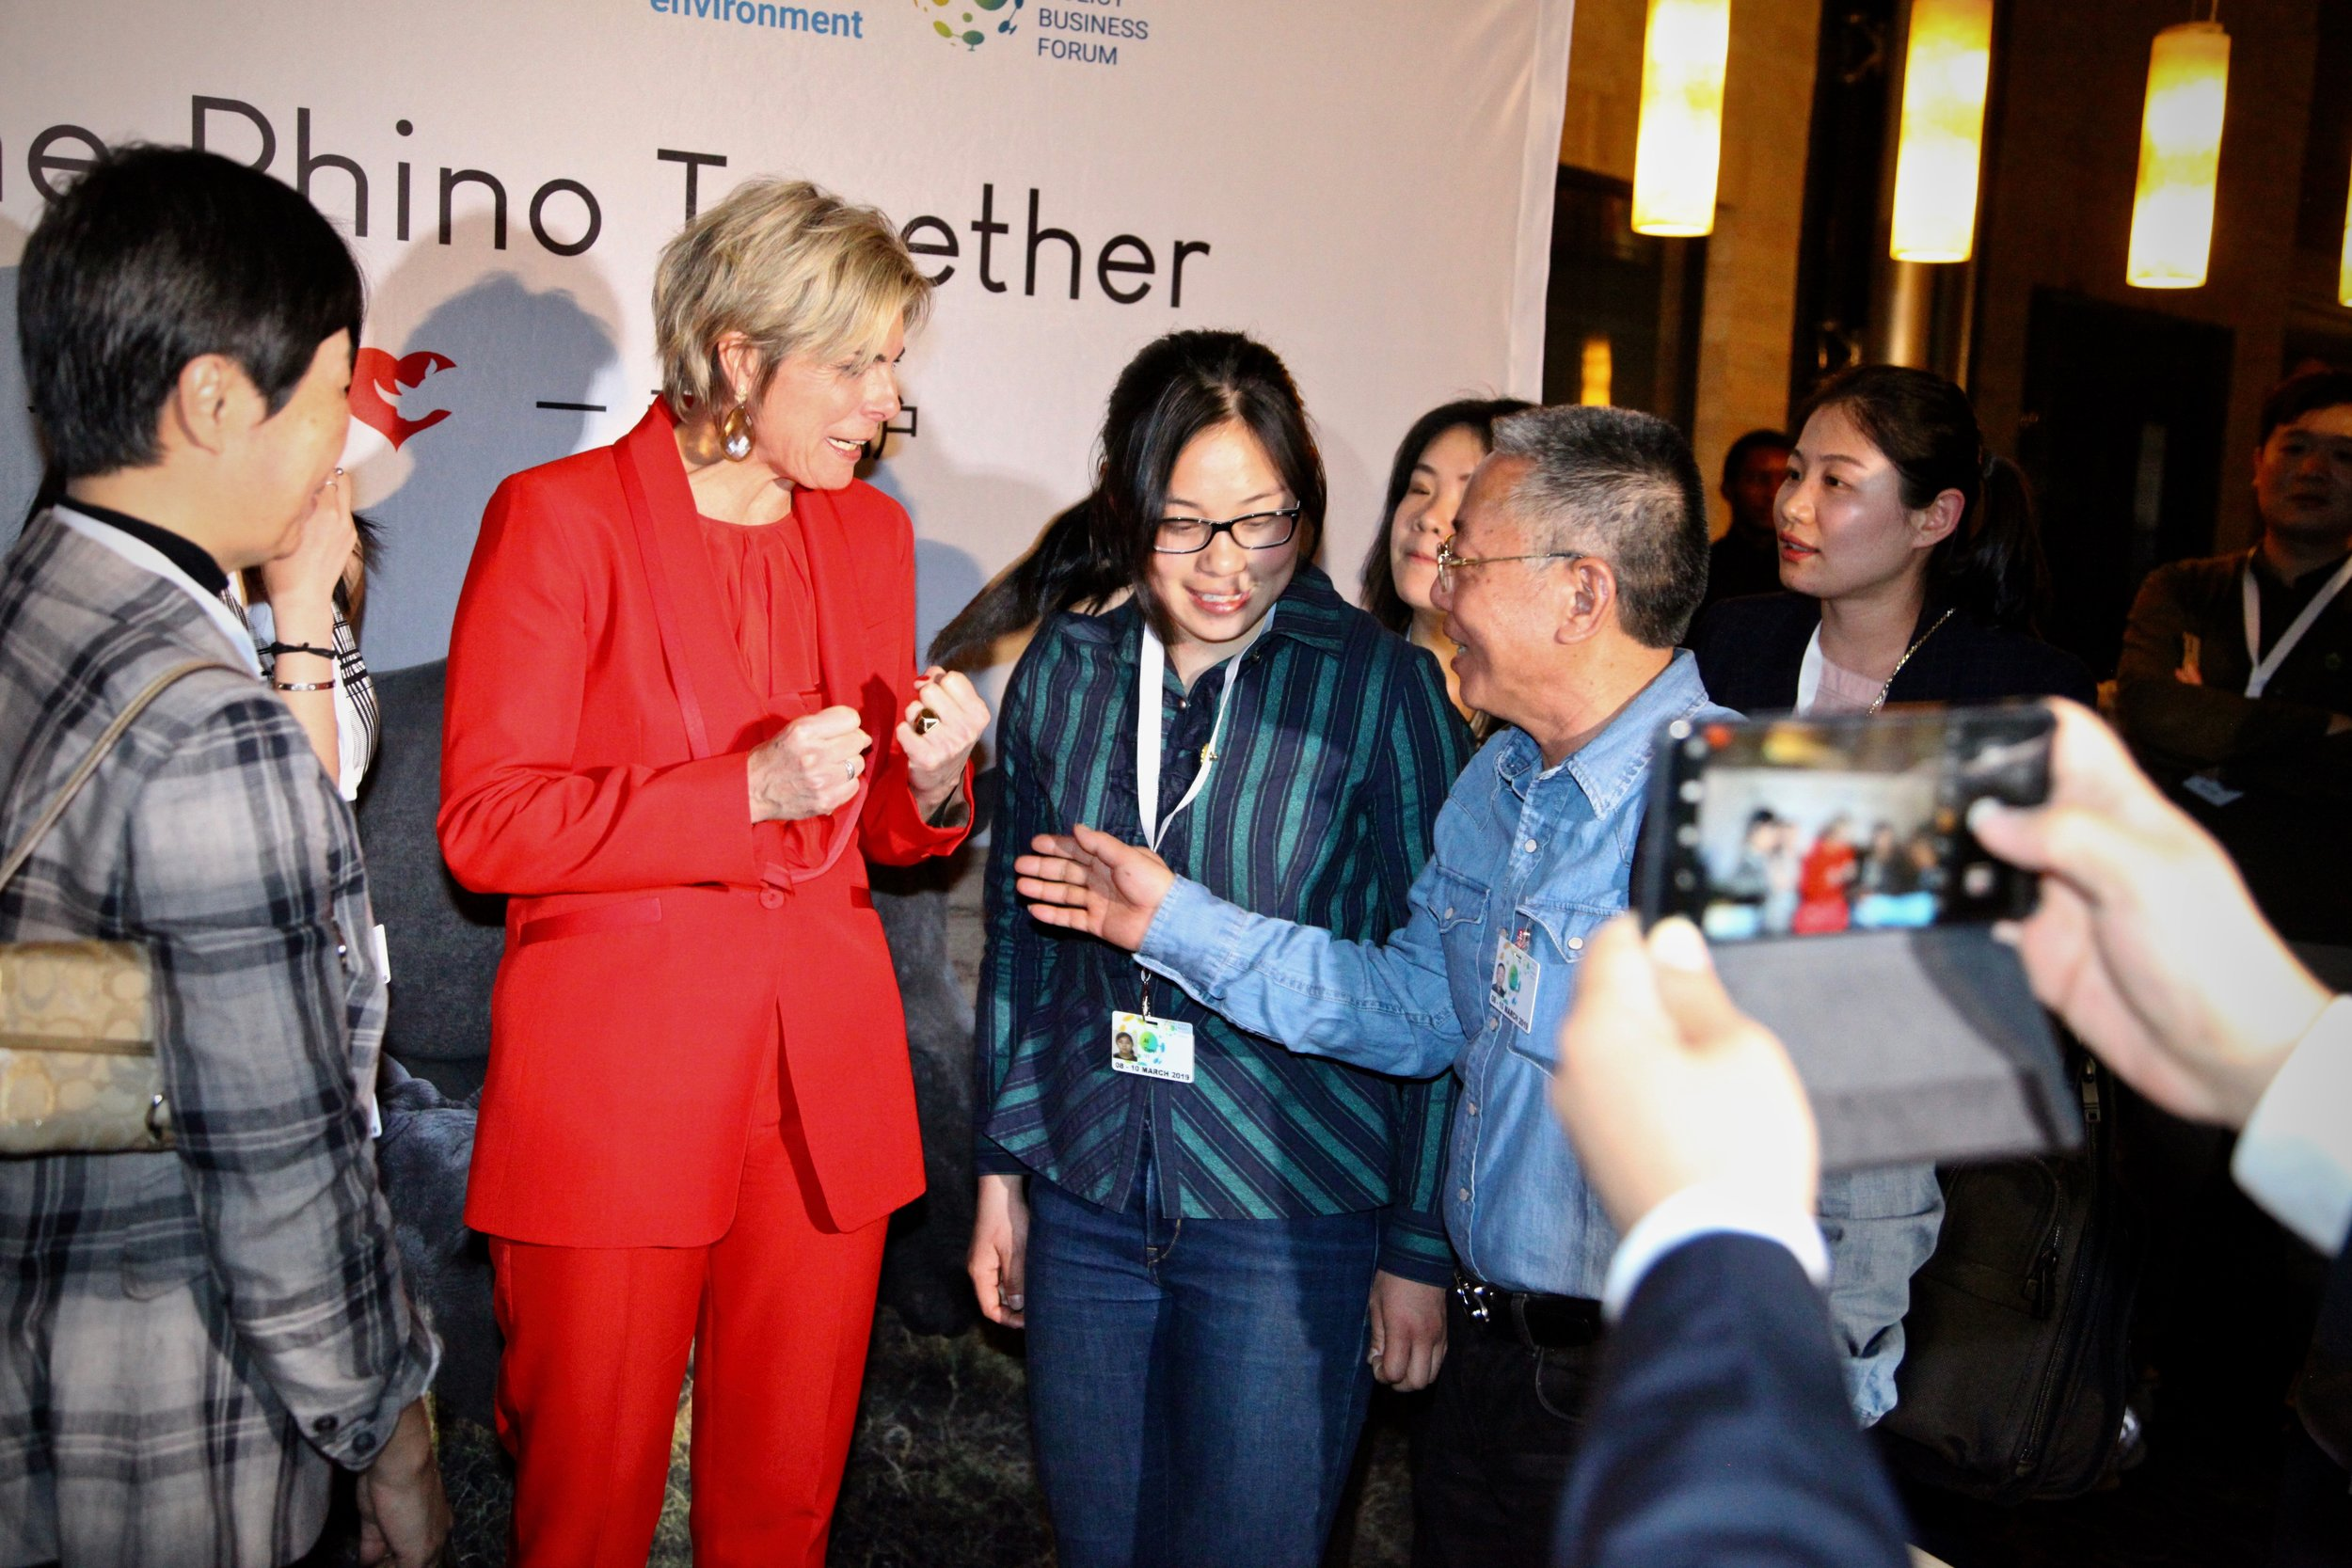 UN Save the Rhino Together Laurentien Kenya CEE China by Joost Bastmeijer 3.jpeg